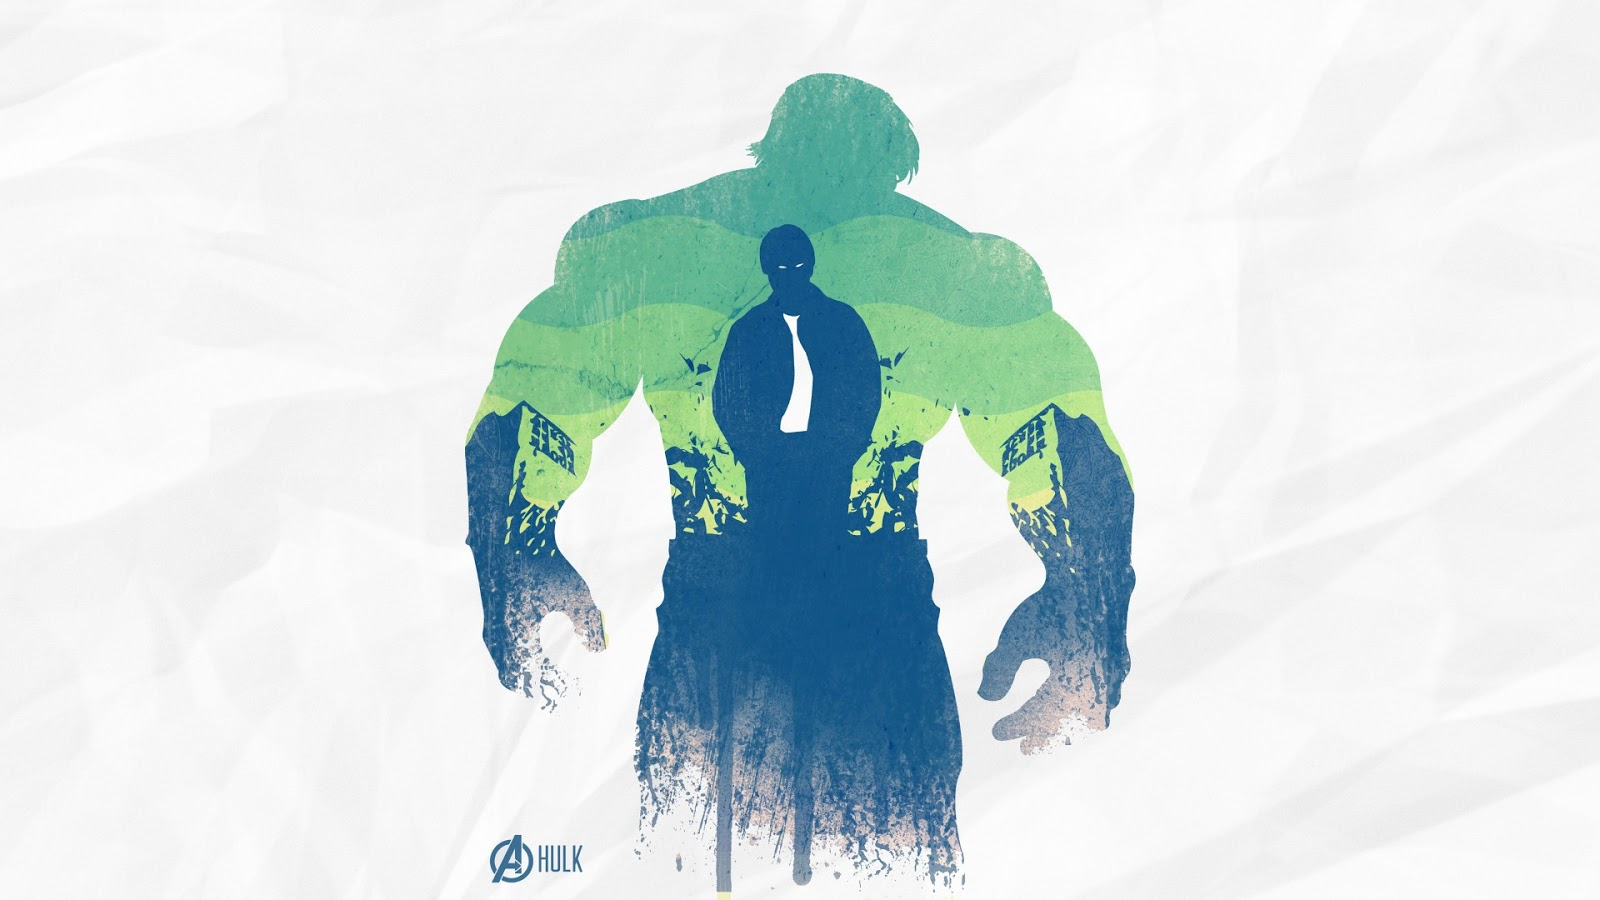 Best Hulk Wallpaper